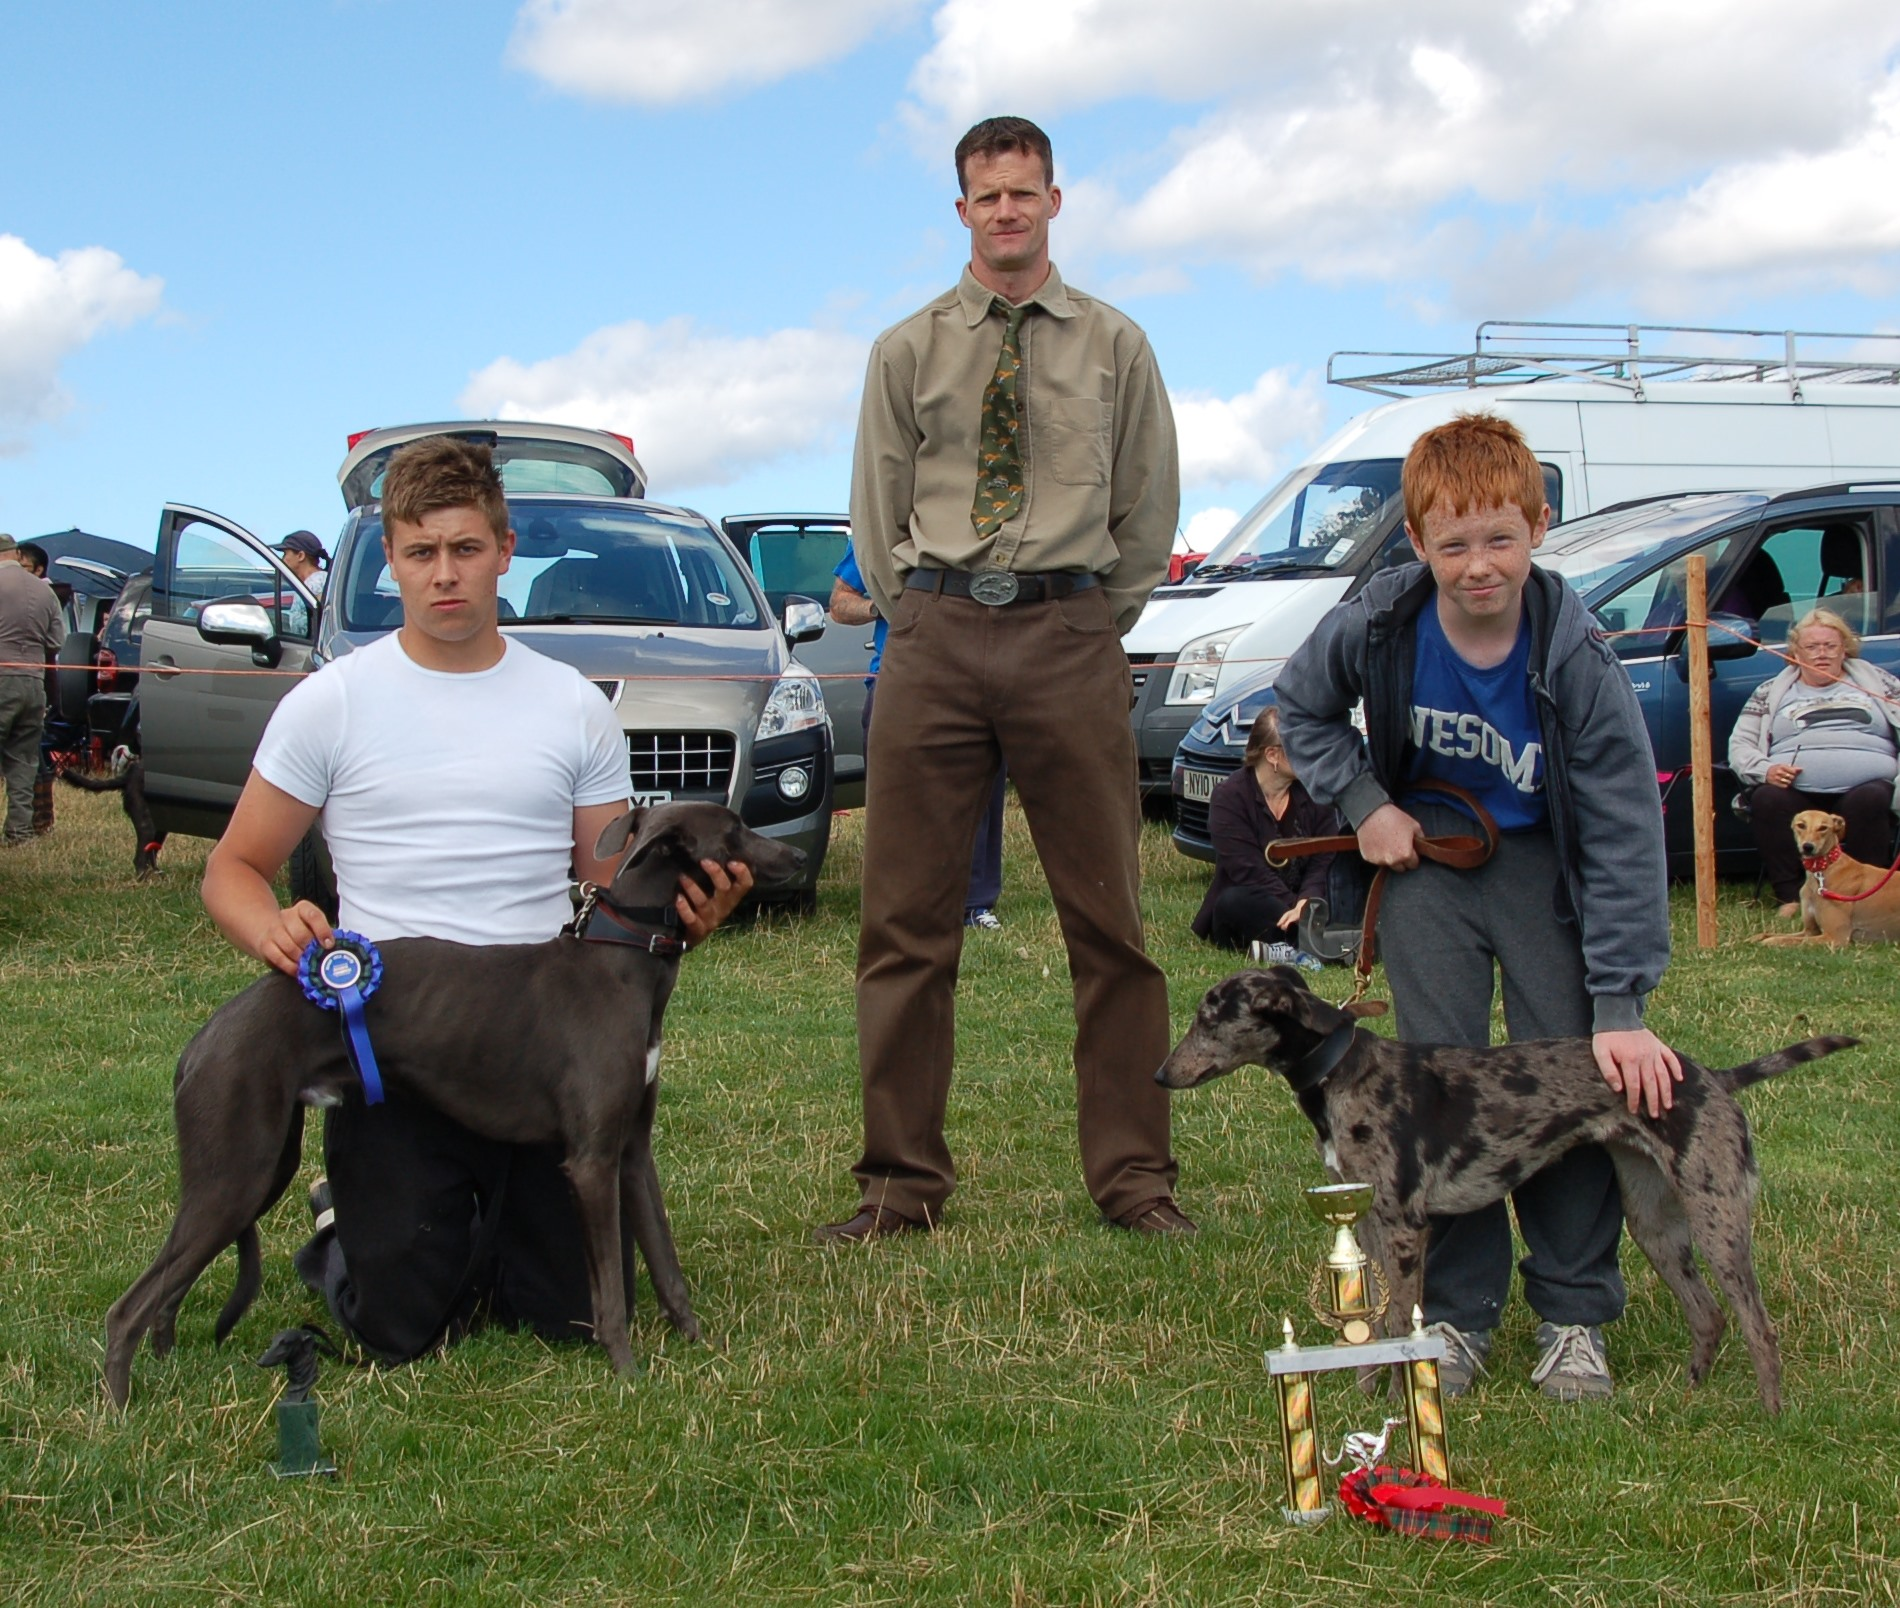 Best two Lurcher Pups, Justin Rudd's Maggie & Sam Shelley's Billy,